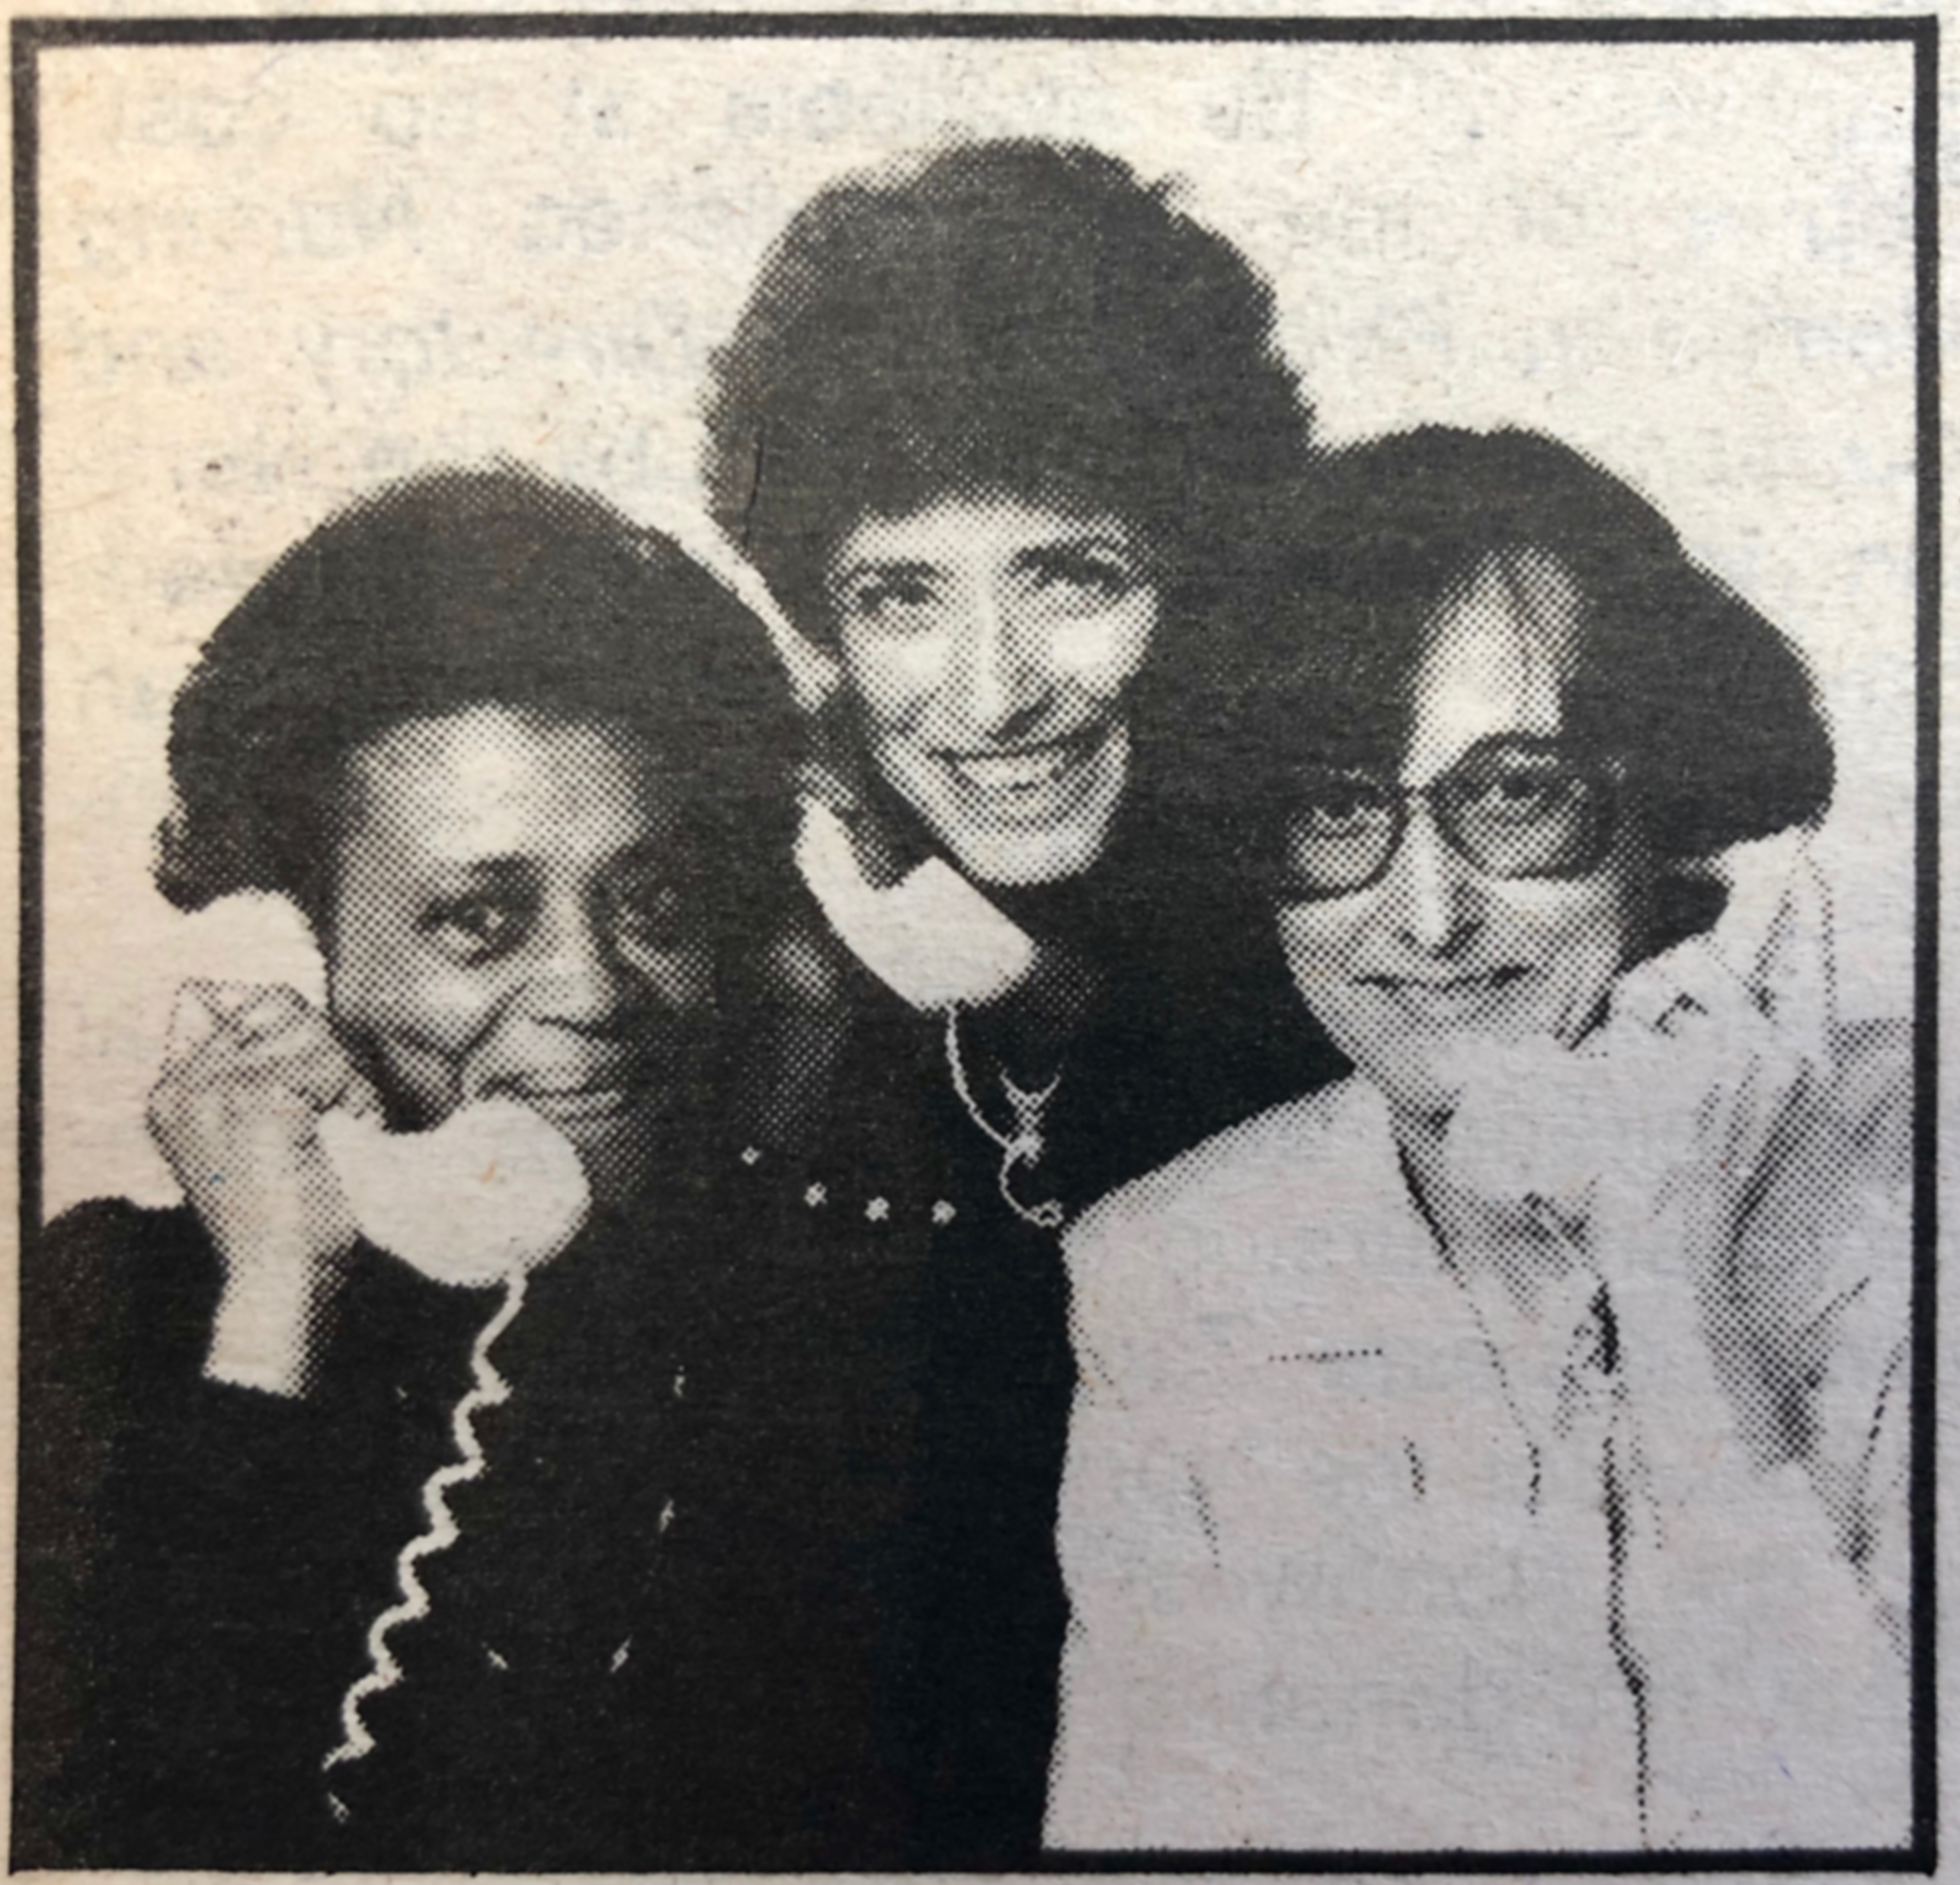 (L to R) Fern Bell, Barbara Bloom, and Jean Swenson.